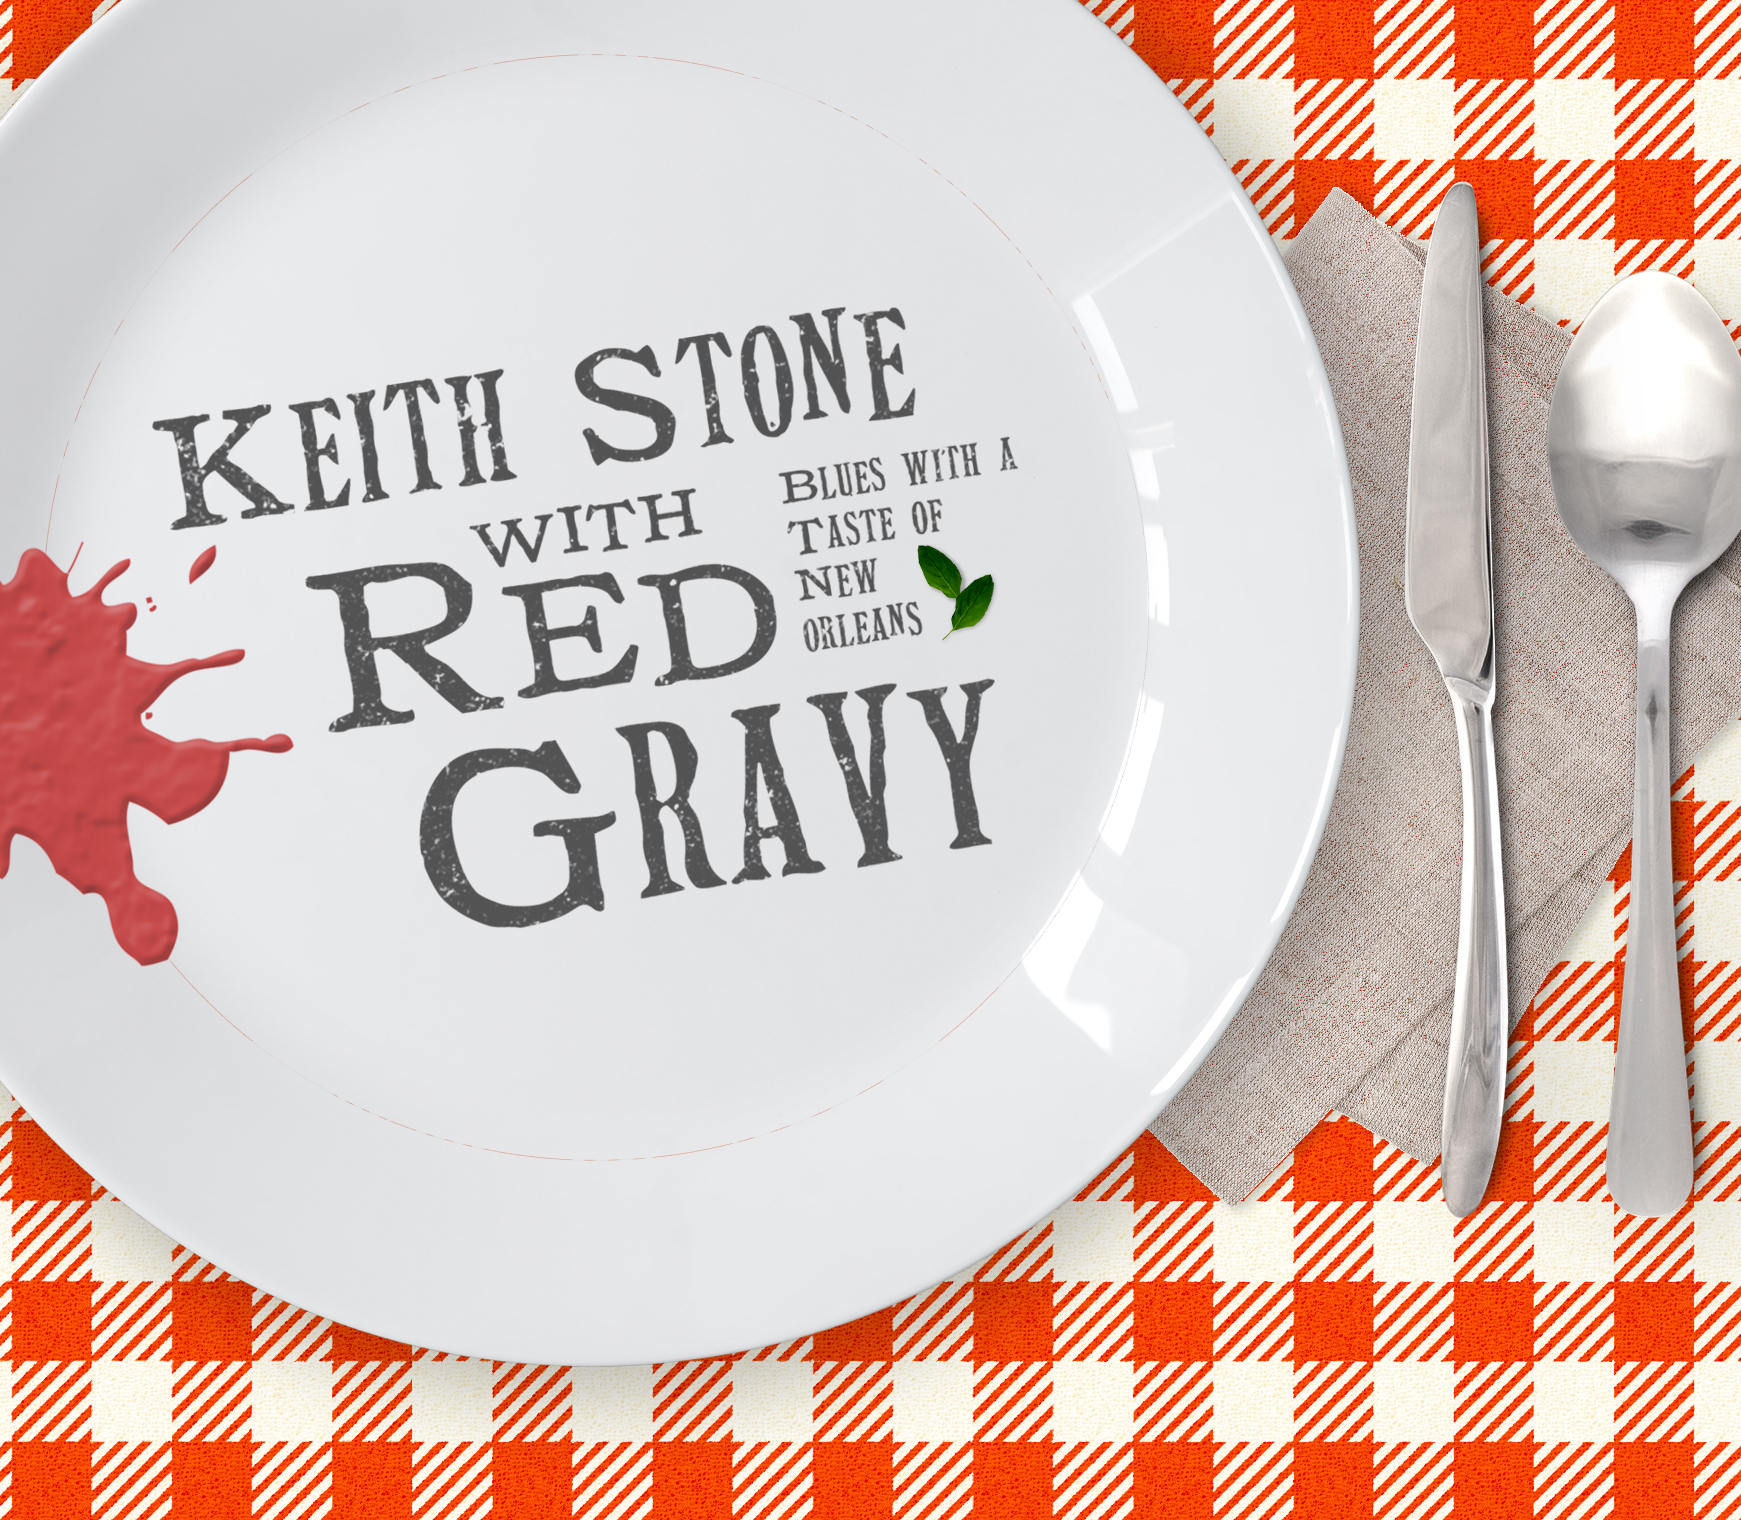 Keith-Stone-with-Red-Gravy-Album-Artwork_Front Cover.jpg